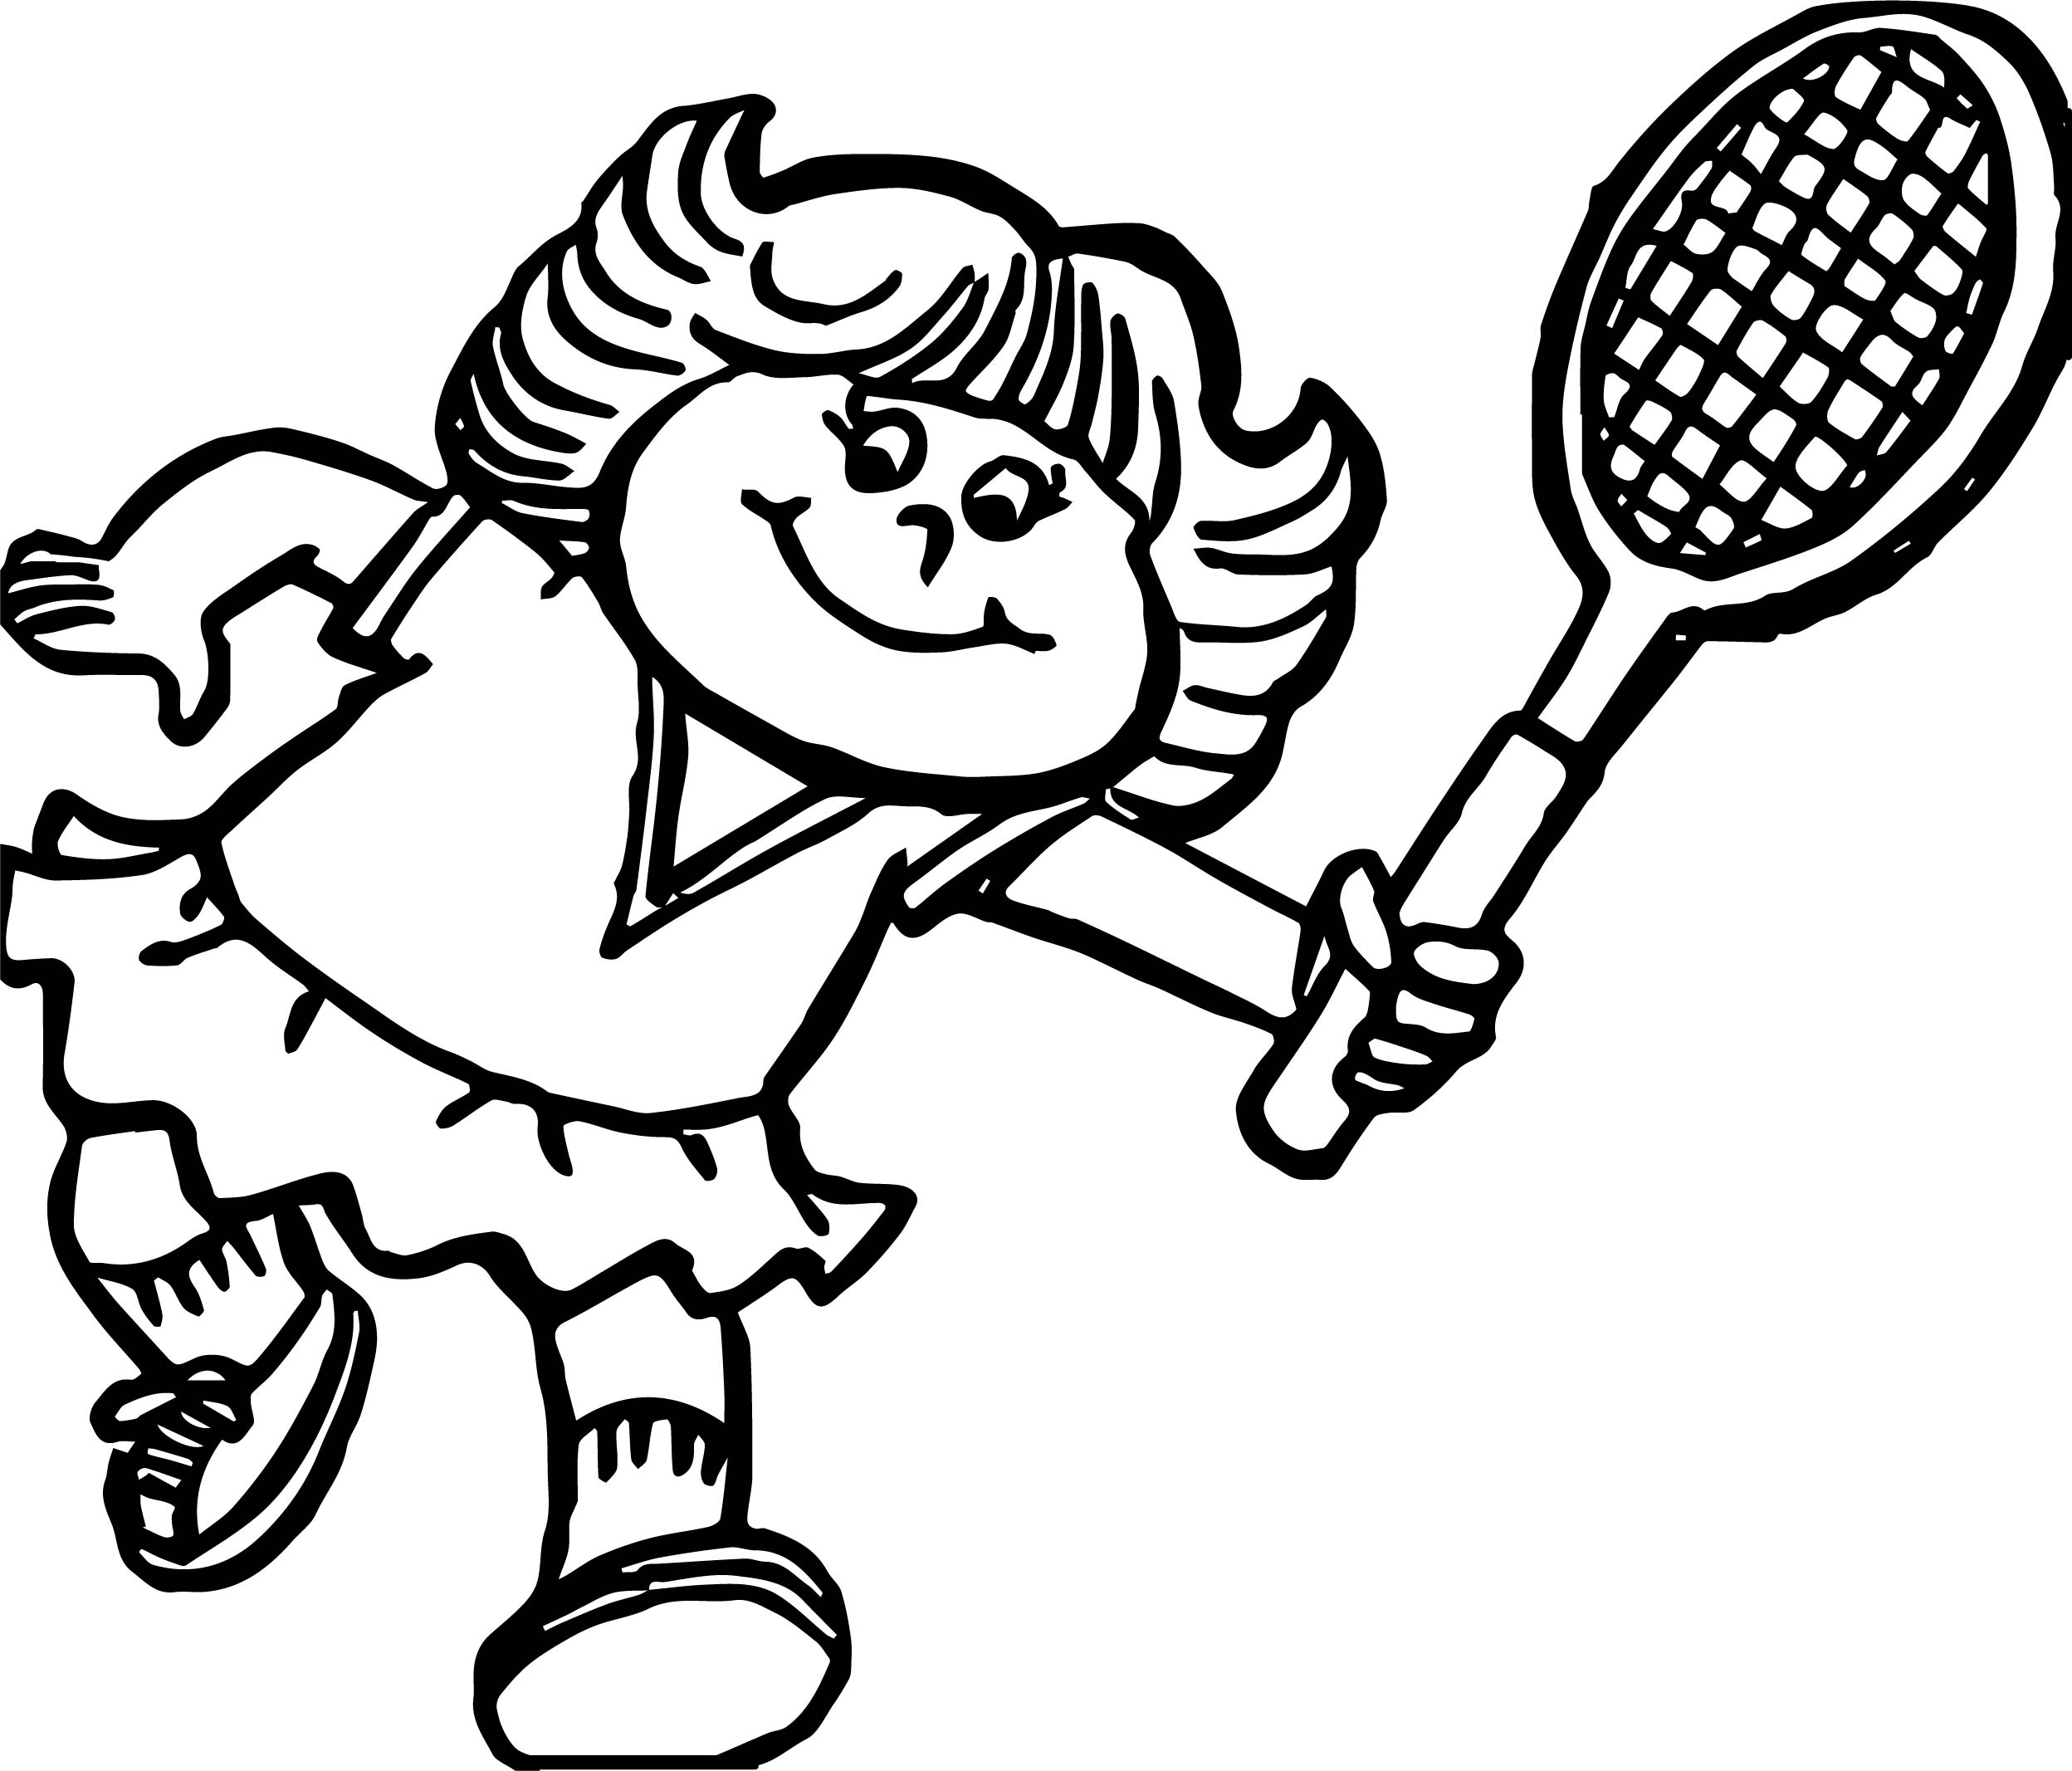 2496x2133 New Tennis Coloring Page Design Printable Coloring Sheet